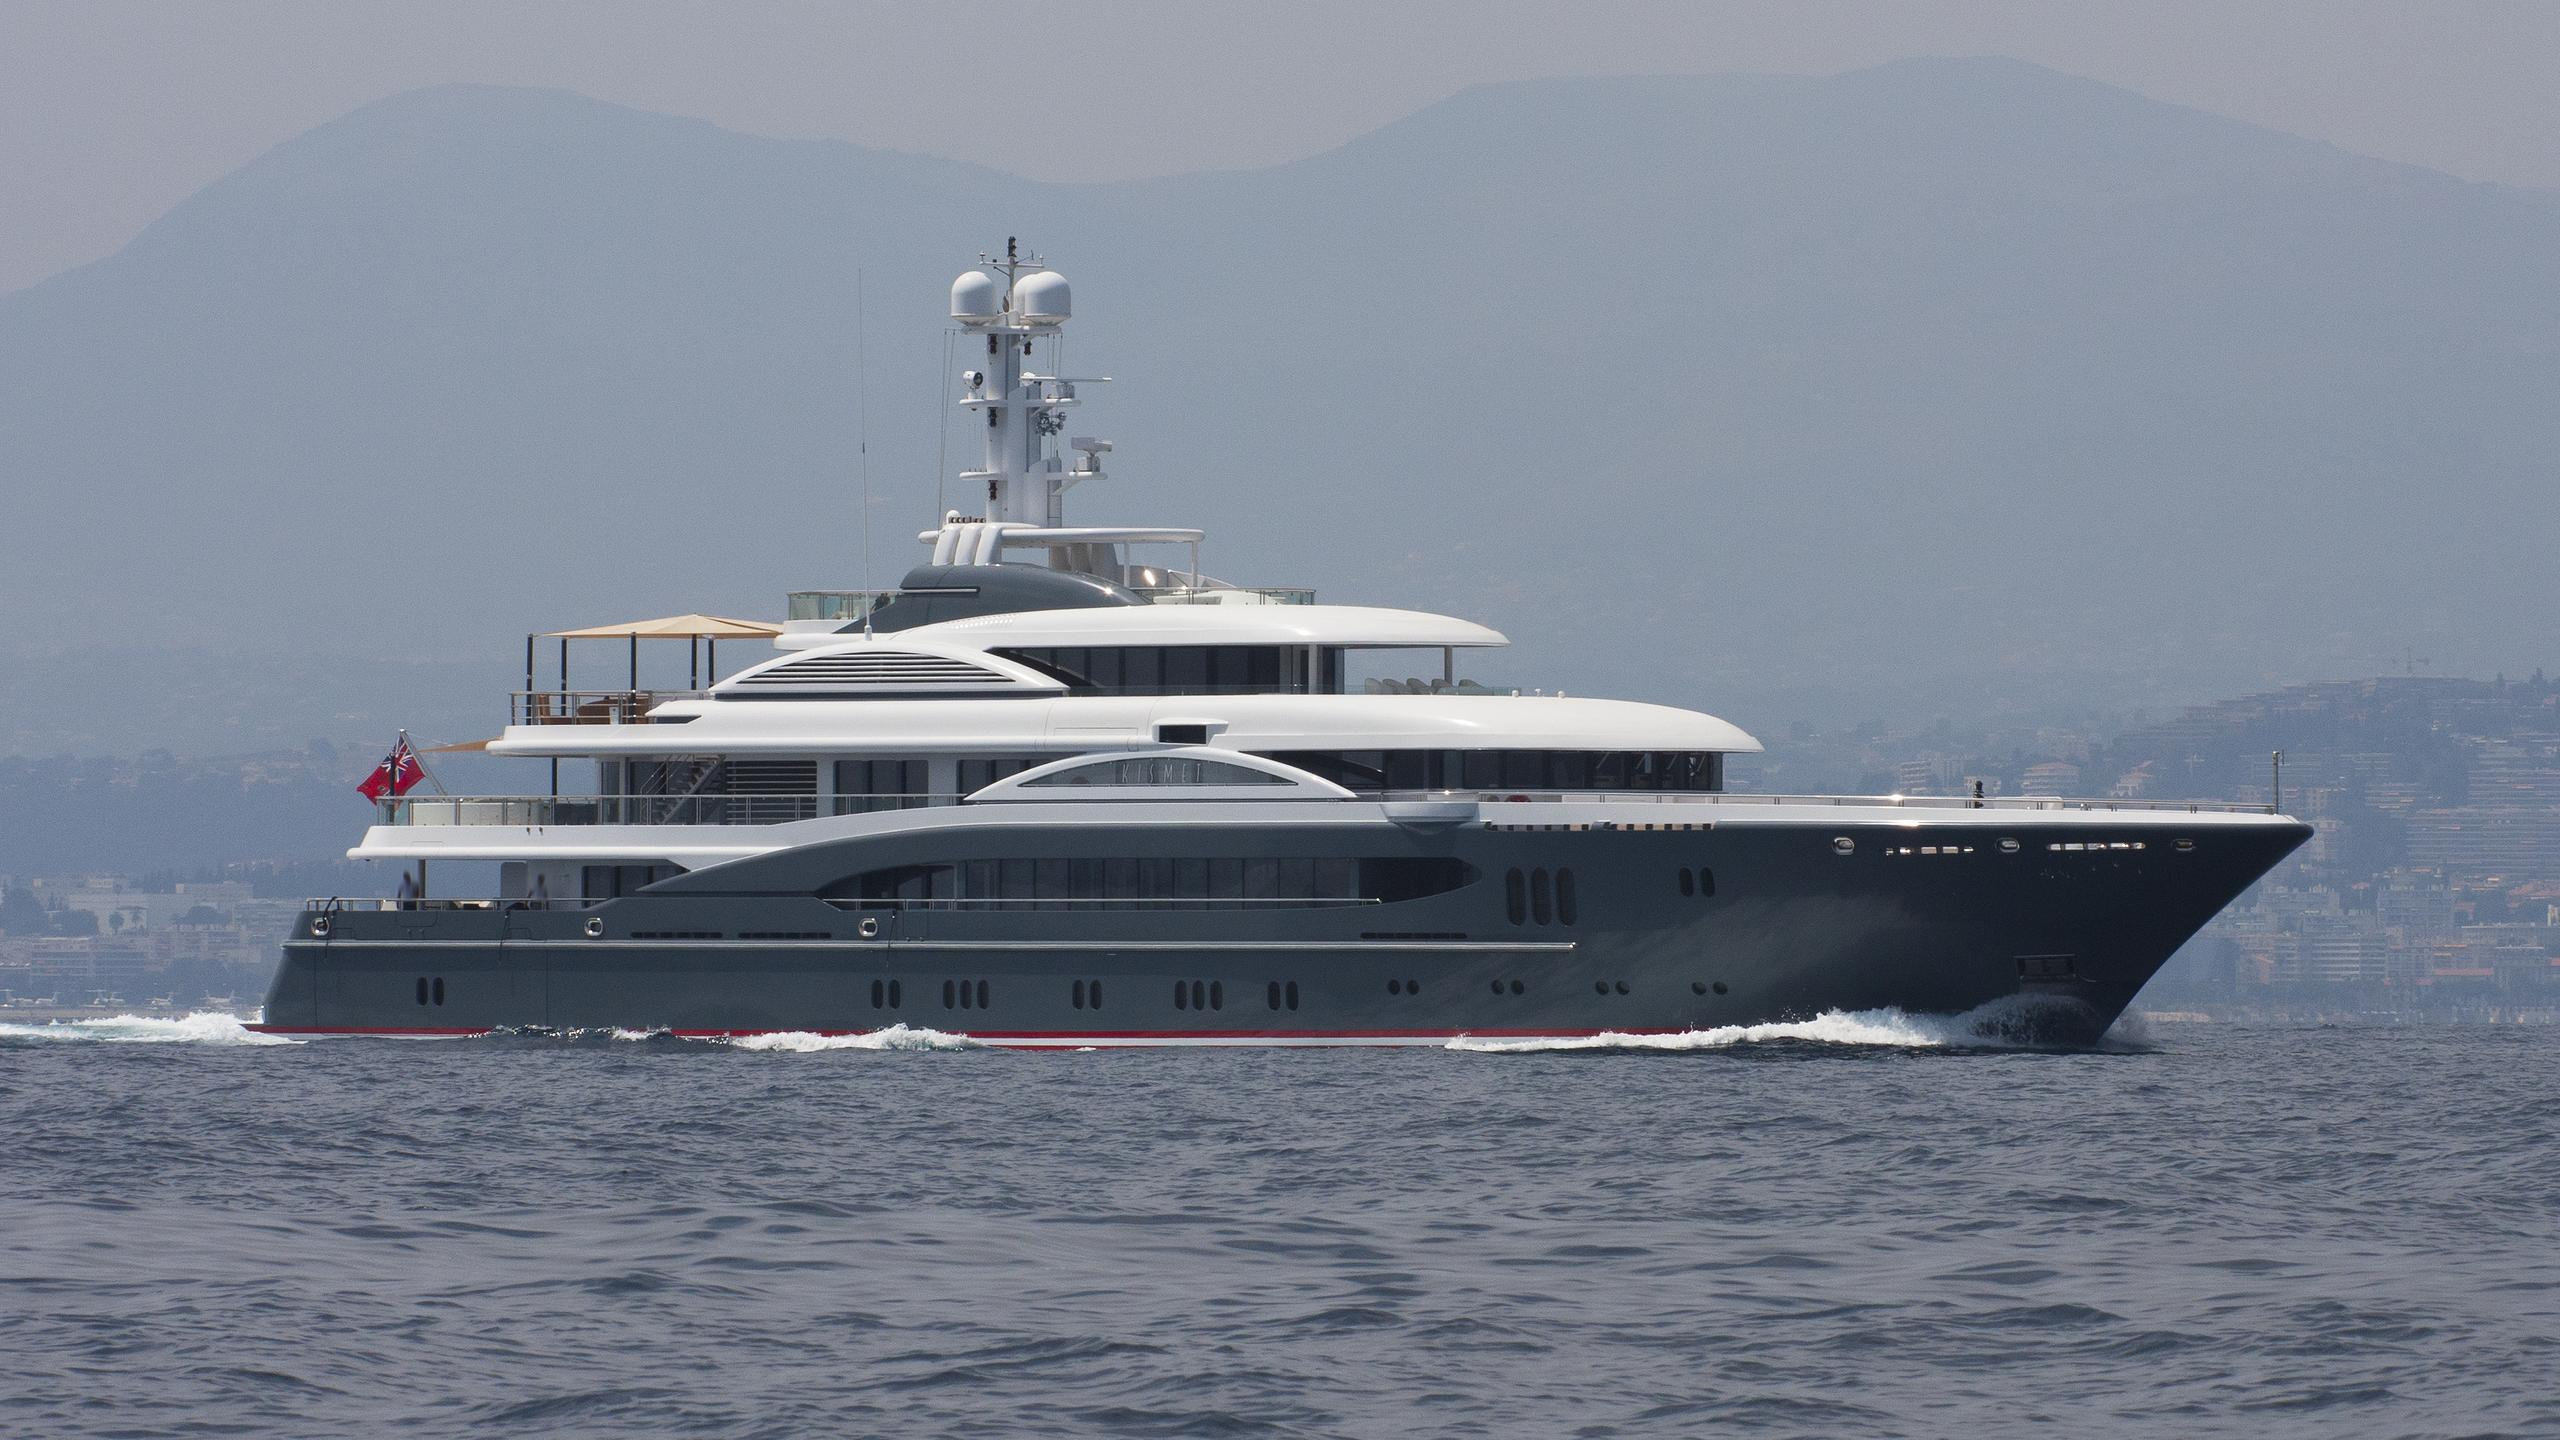 global kismet motor yacht lurssen 2007 74m cruising before refit